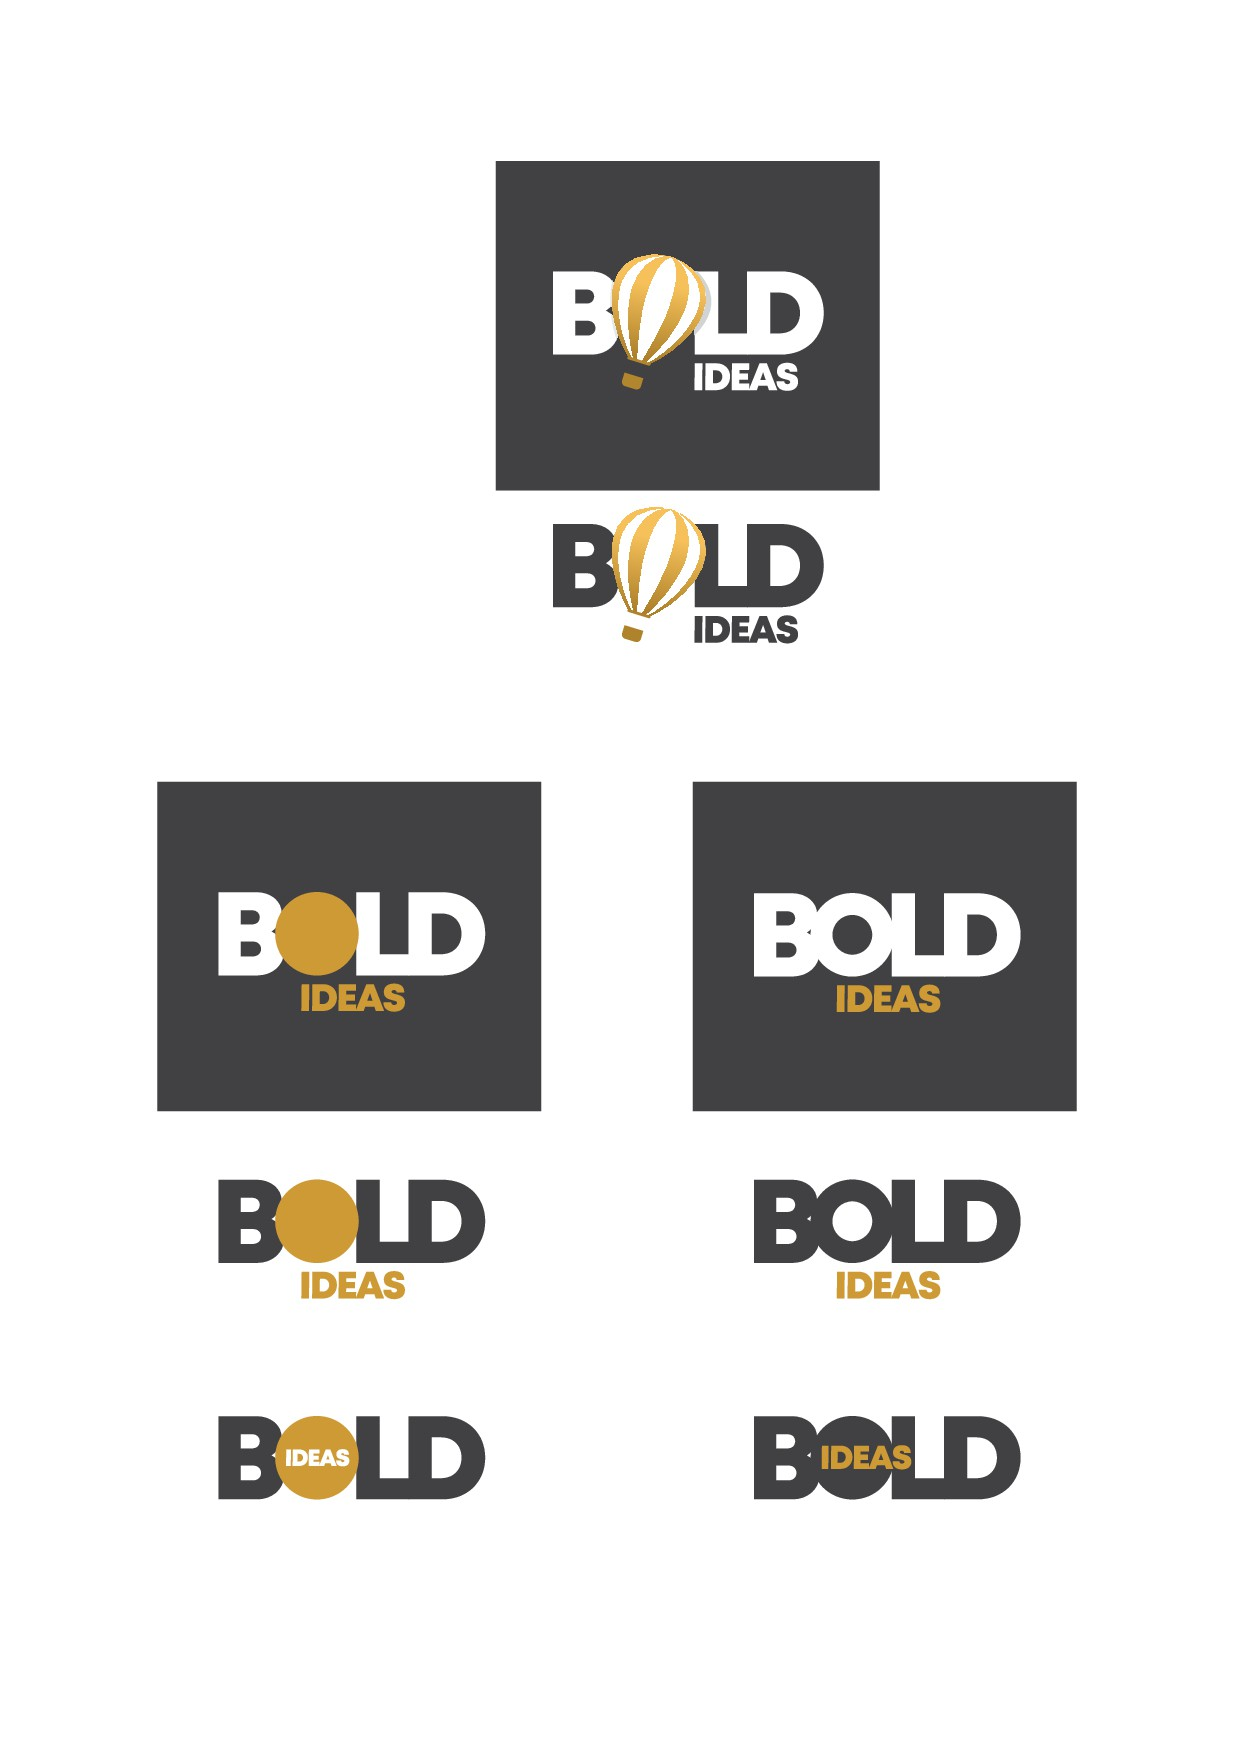 Create a logo for a creative conference named BOLD IDEAS to solve mankind's problems together